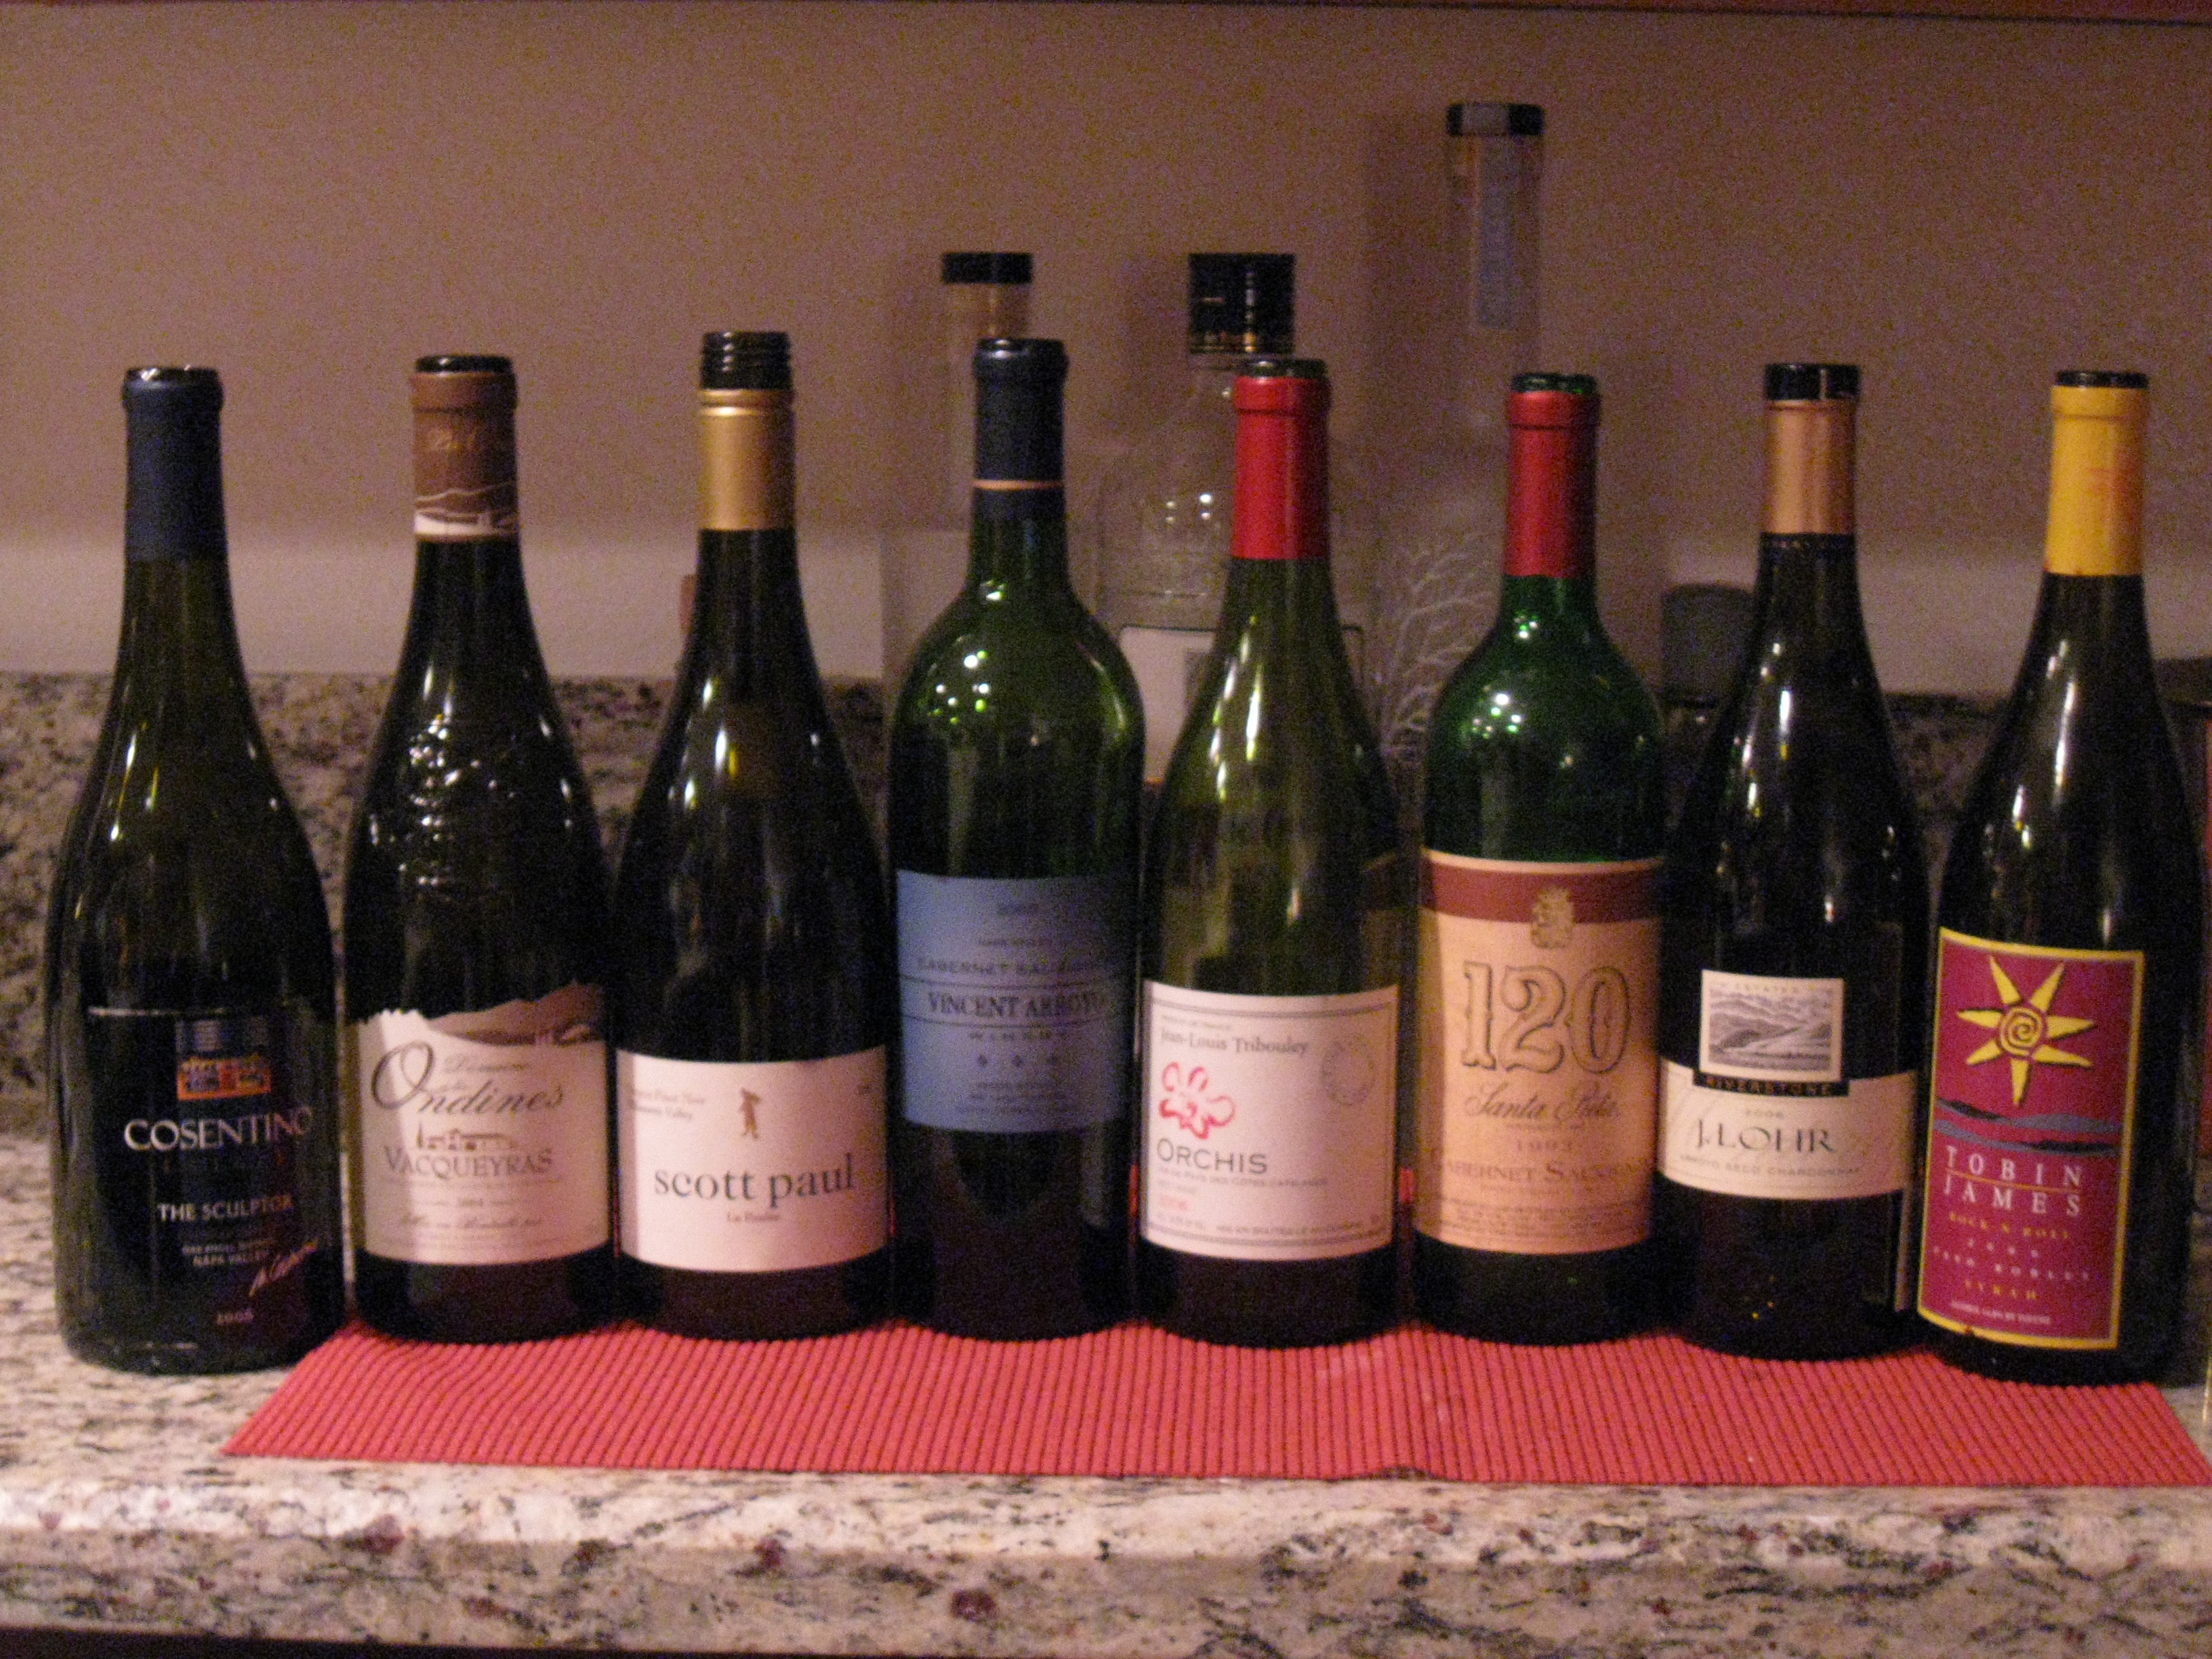 And the 8 bottles of wine we drank.